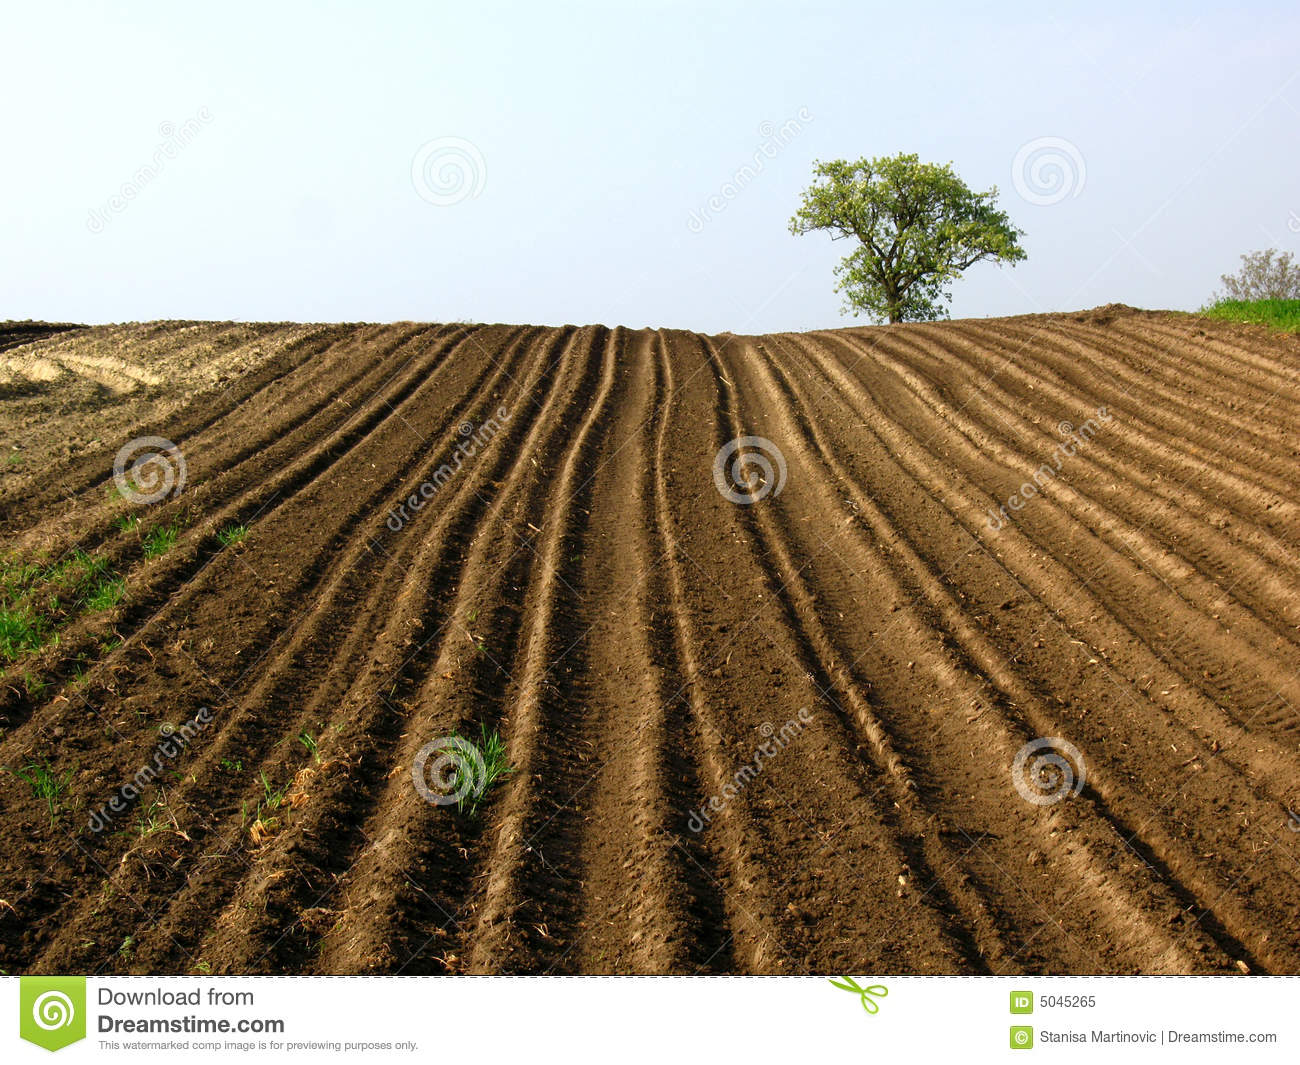 https://i1.wp.com/thumbs.dreamstime.com/z/plowed-field-5045265.jpg